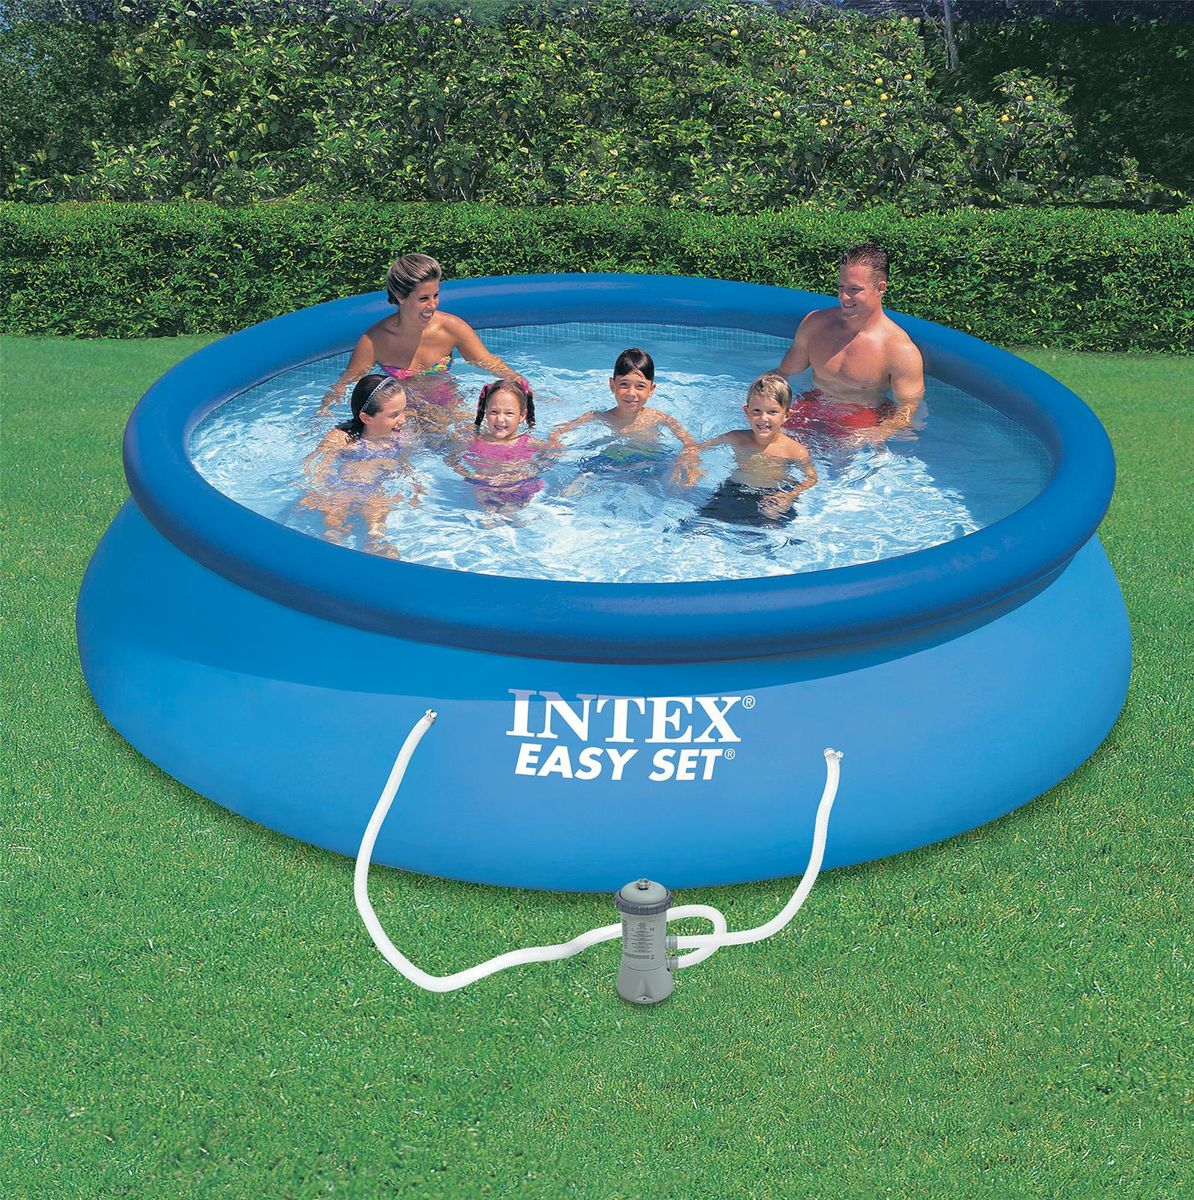 Piscine intex easy set 3 66x0 76 cash piscines - Piscine cash piscine ...